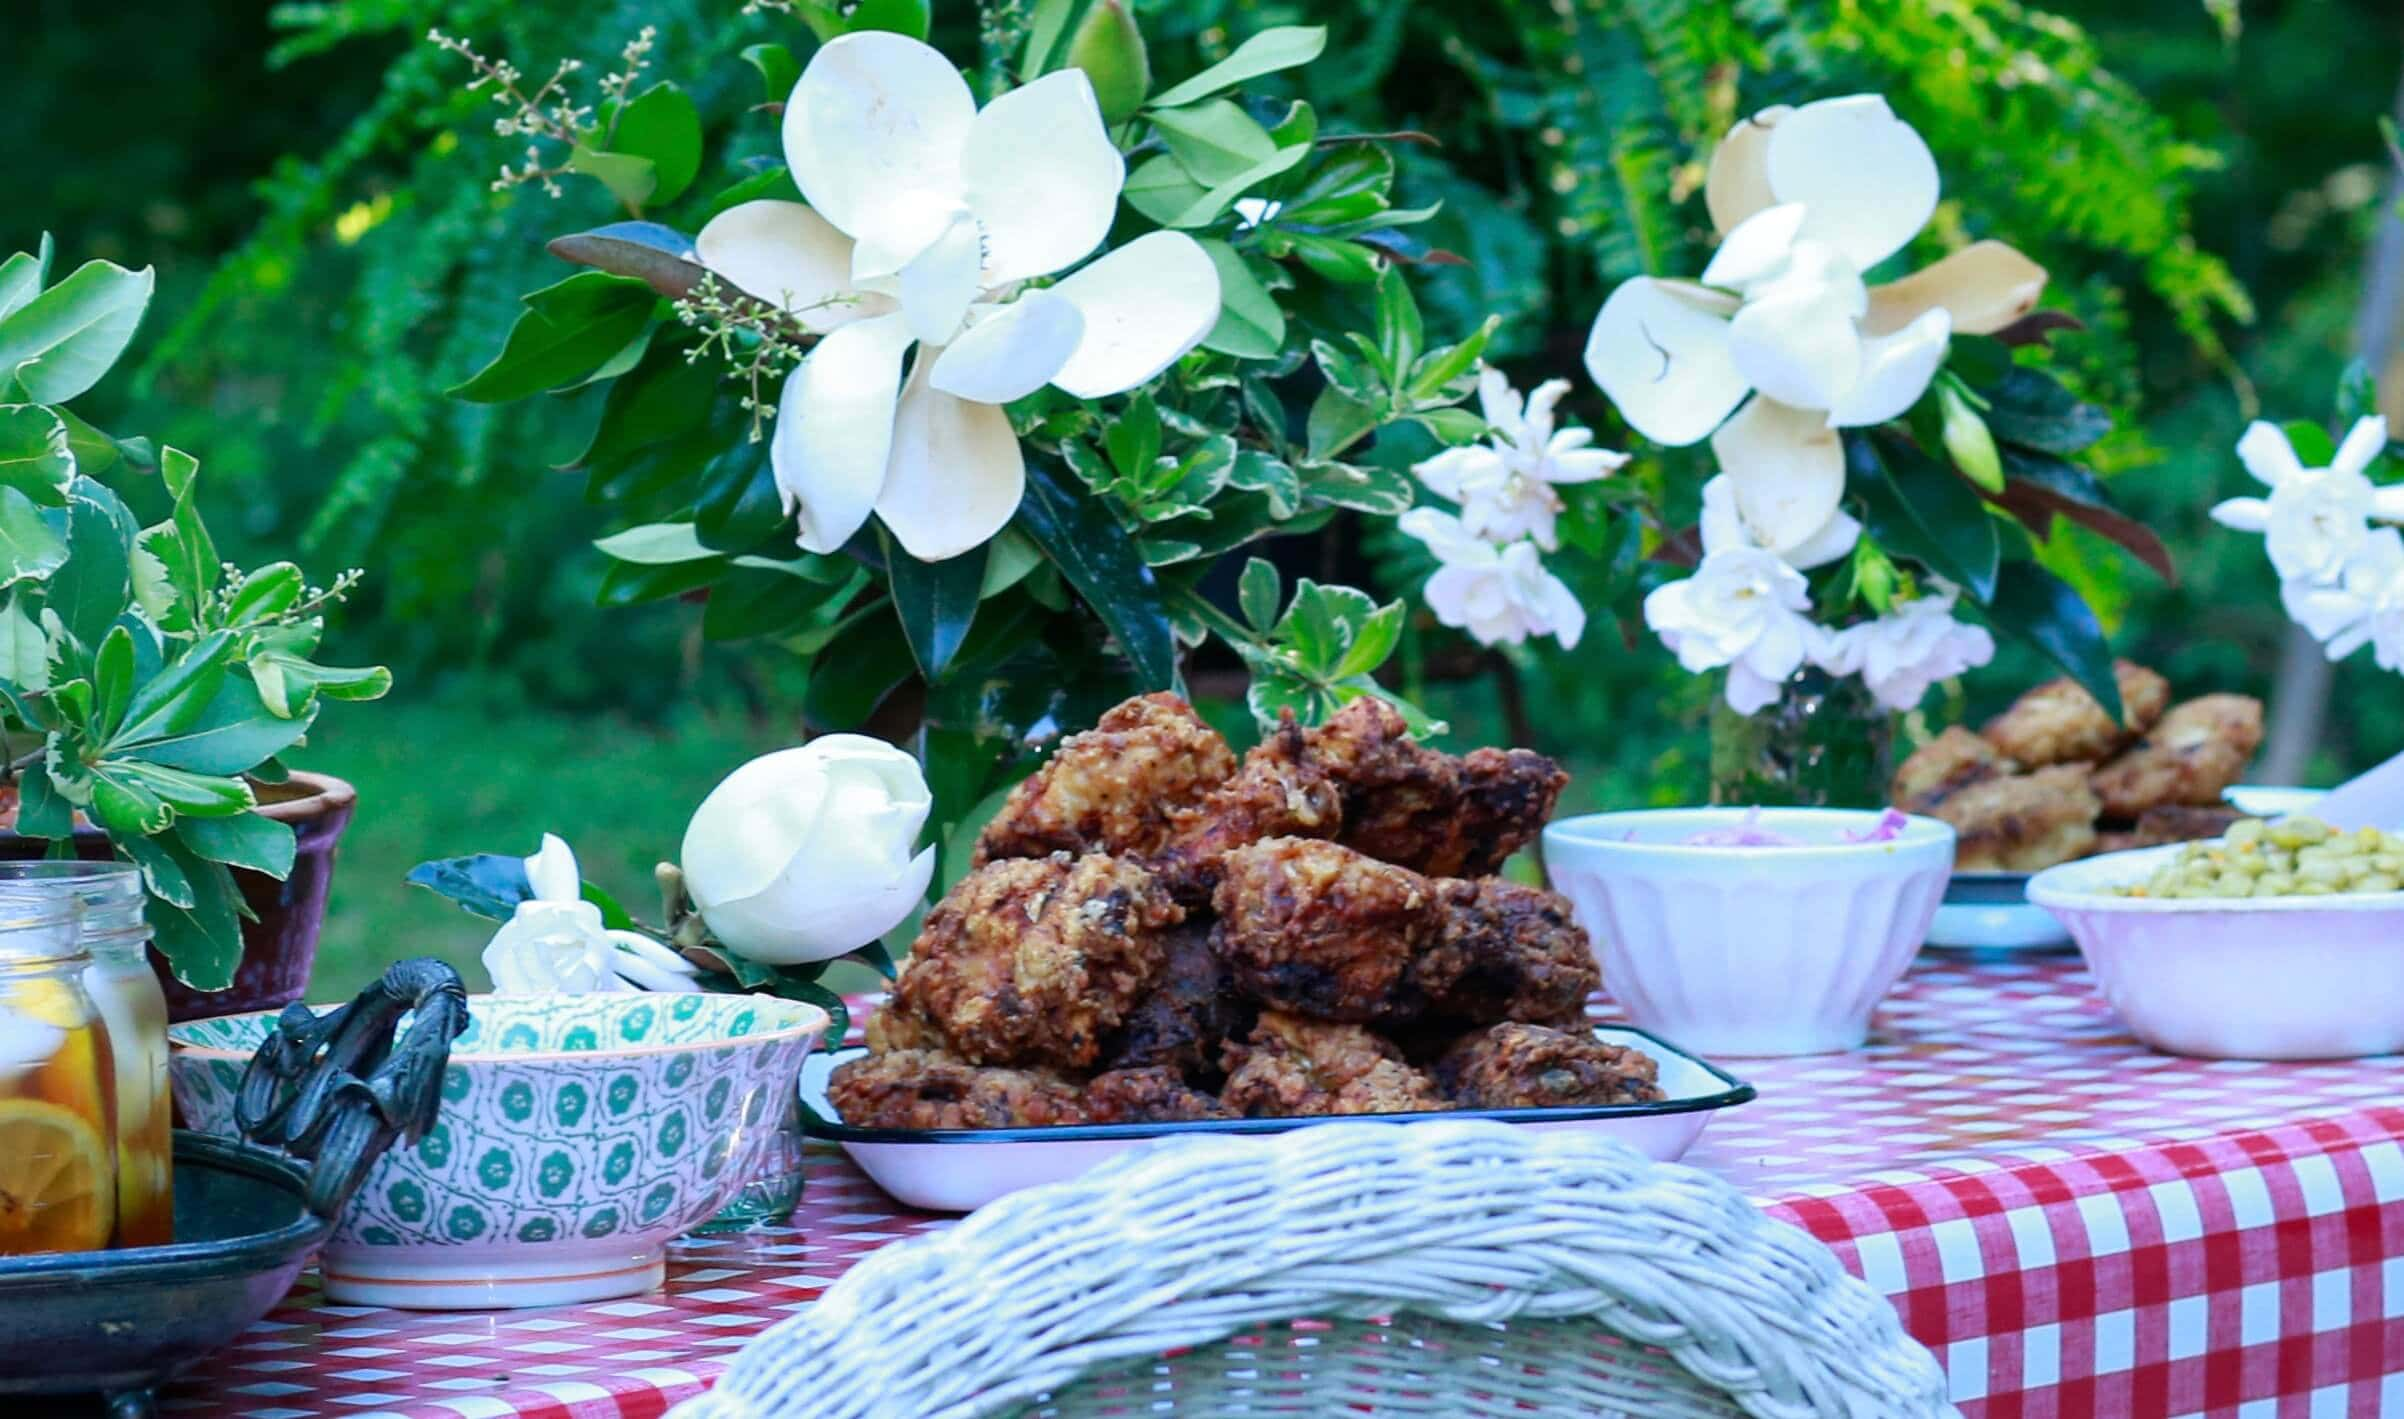 Granny's Fried Chicken, recipe by Stacy Lyn Harris